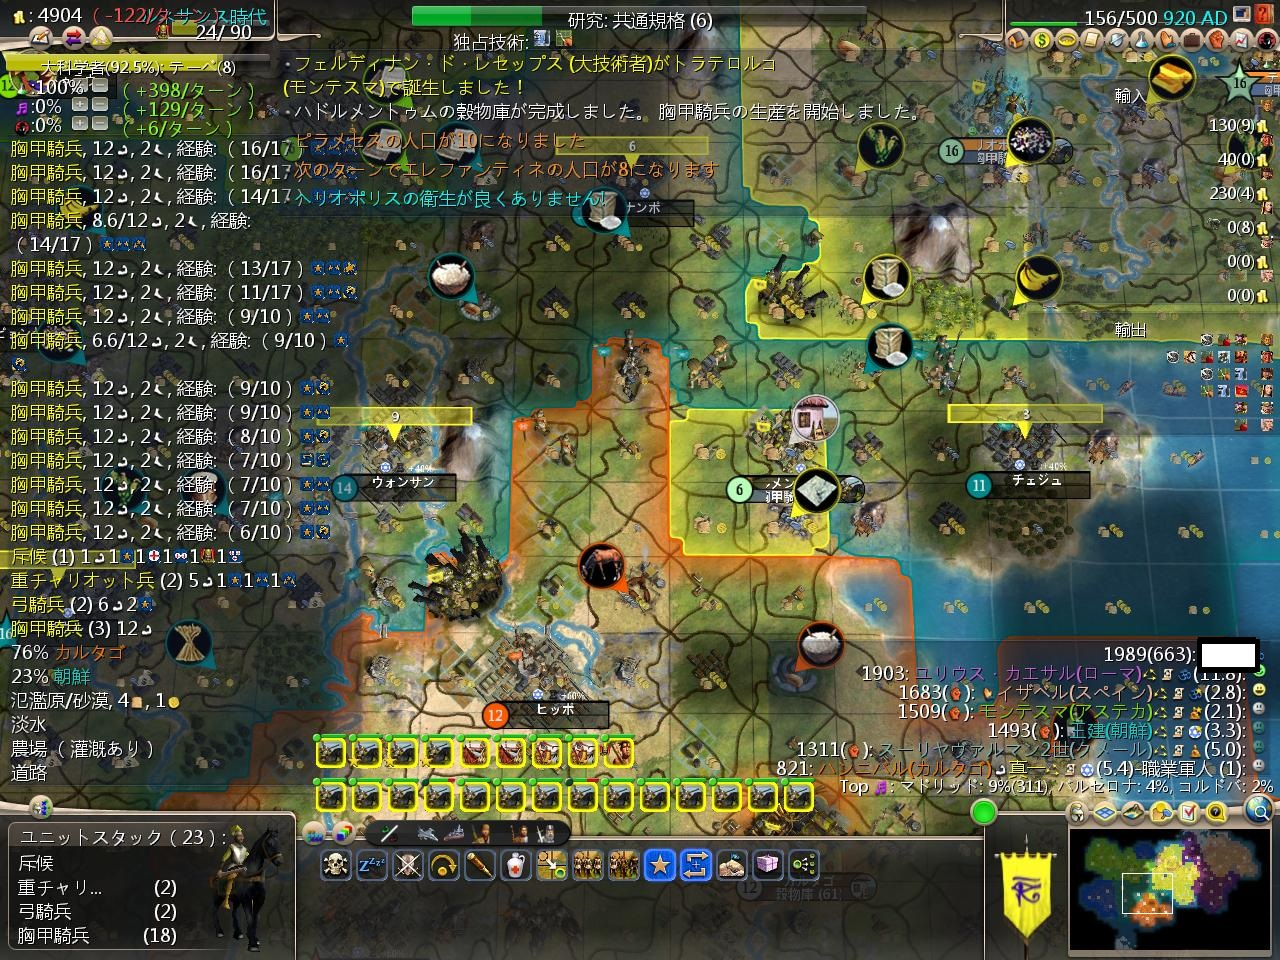 Civ4ScreenShot2211.JPG